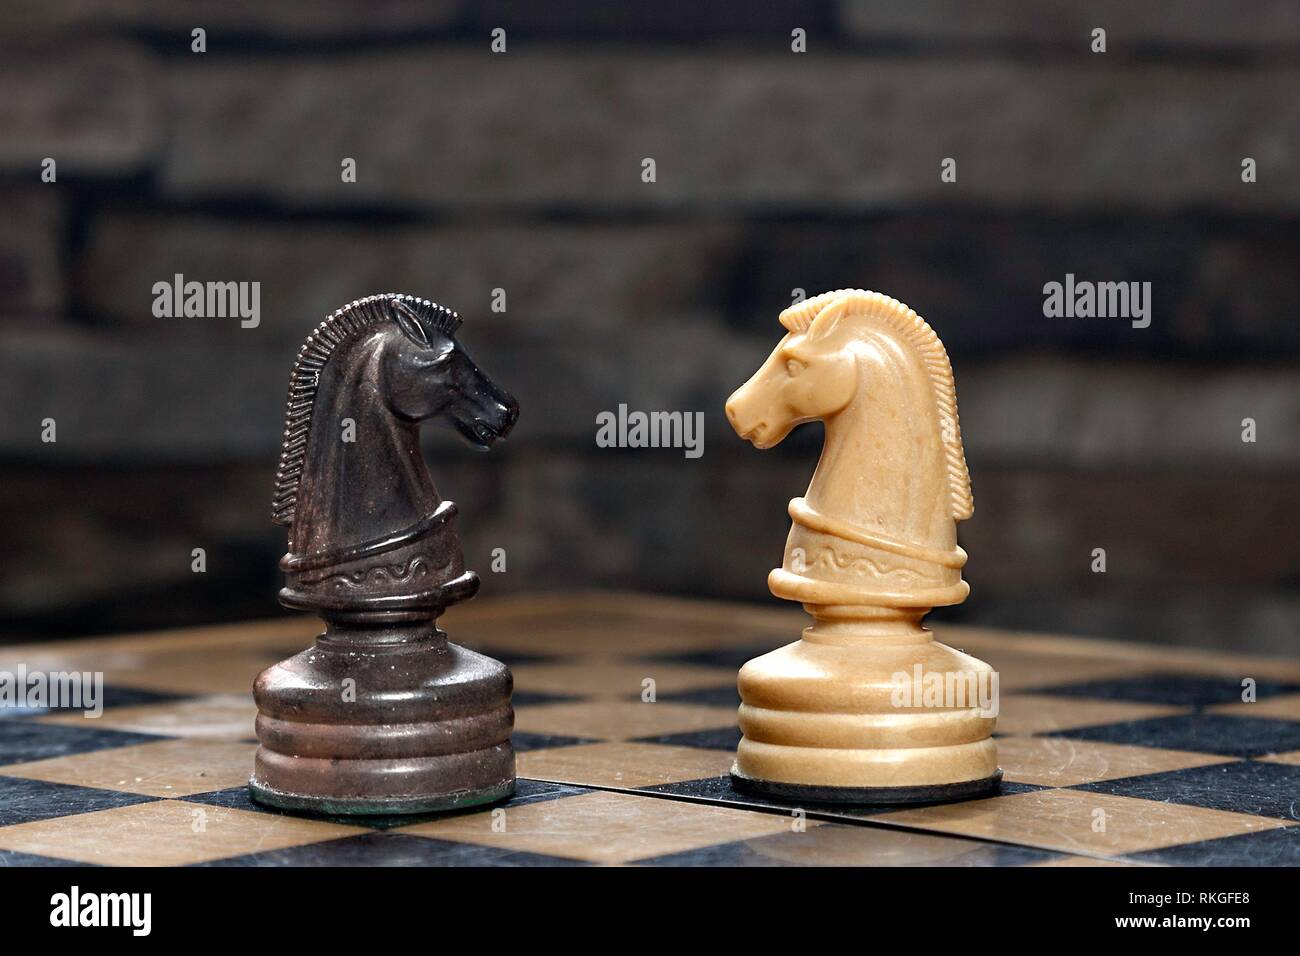 Chess horses faced with chessboard with stone. - Stock Image